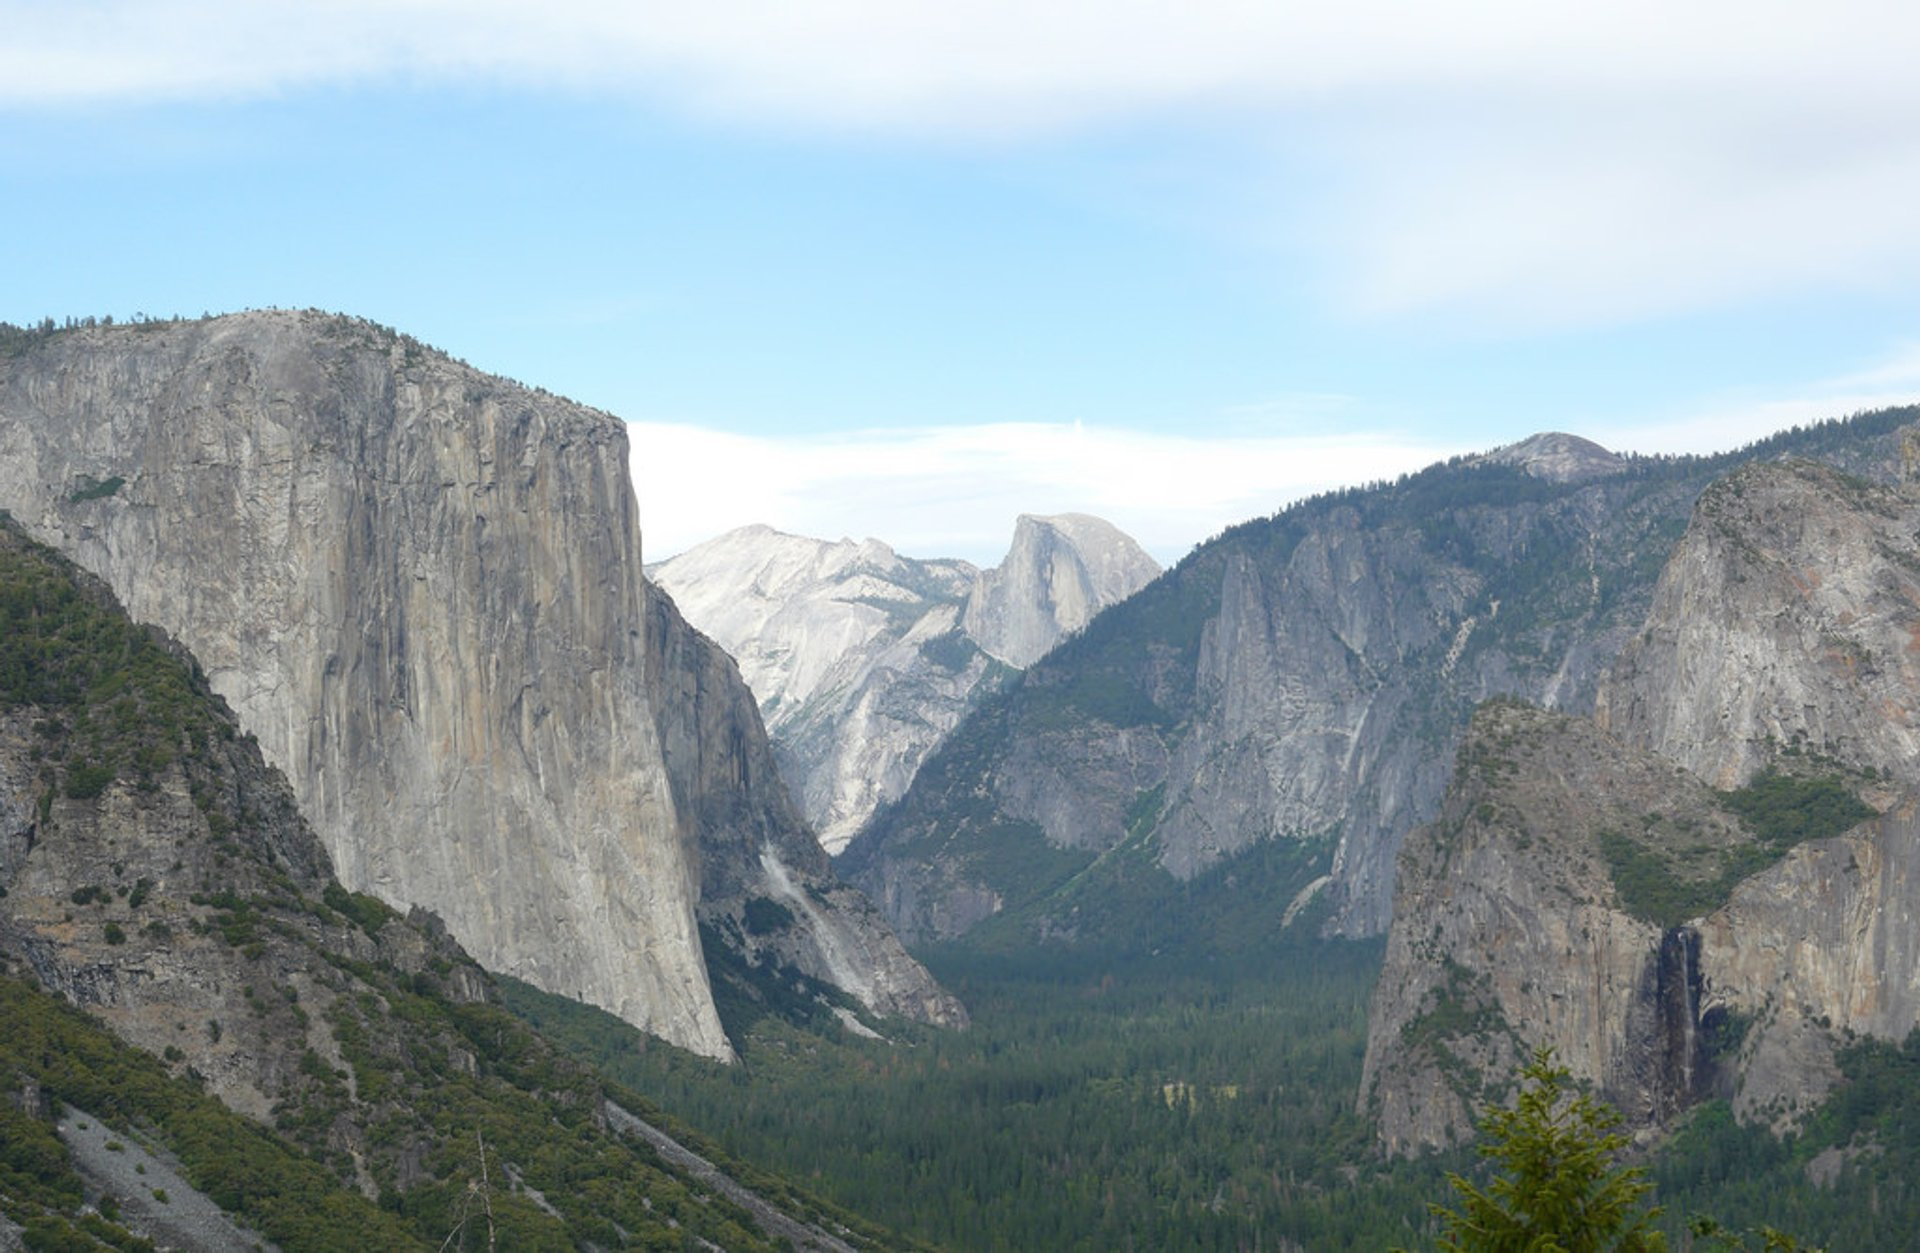 El Capitan Trail in Yosemite 2020 - Best Time